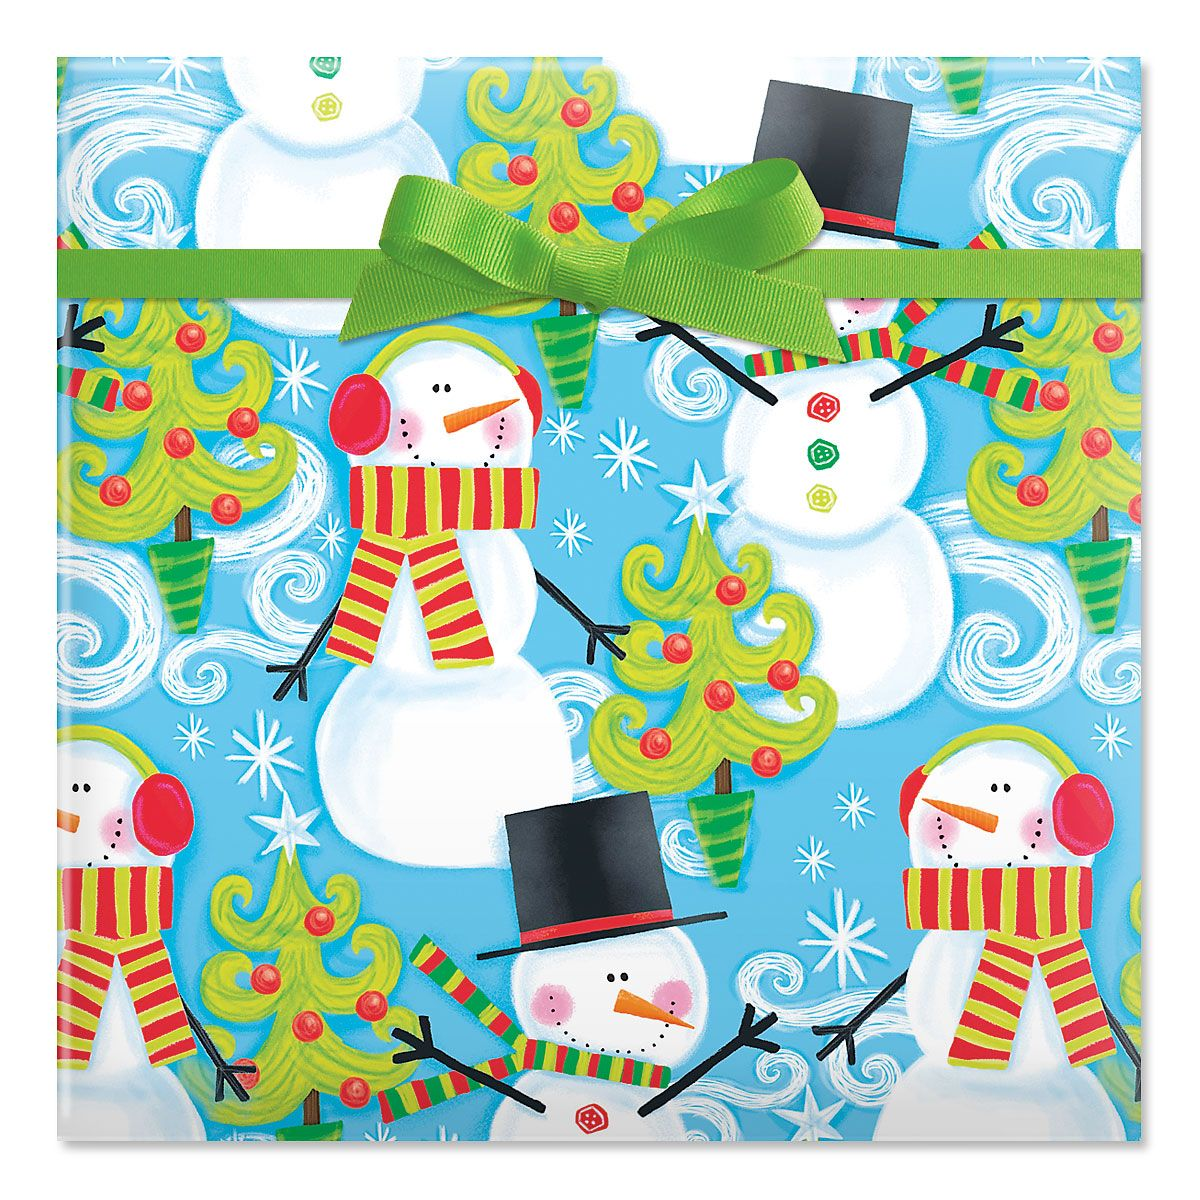 Swirly Snowman Jumbo Rolled Gift Wrap